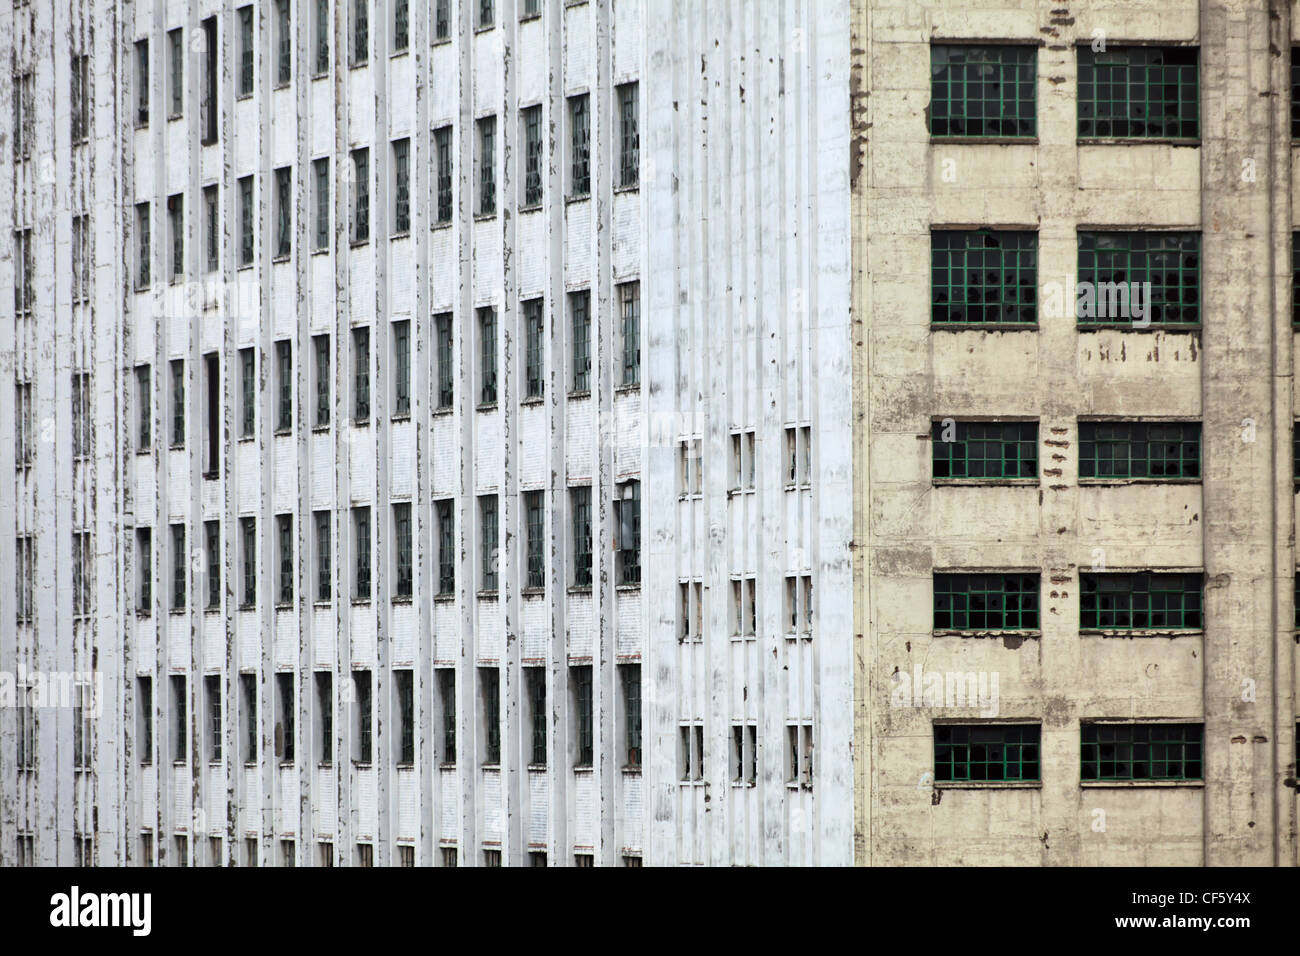 Side elevation of the Spillers Millennium Mills in Docklands. The Millennium Mills have become a much loved icon - Stock Image